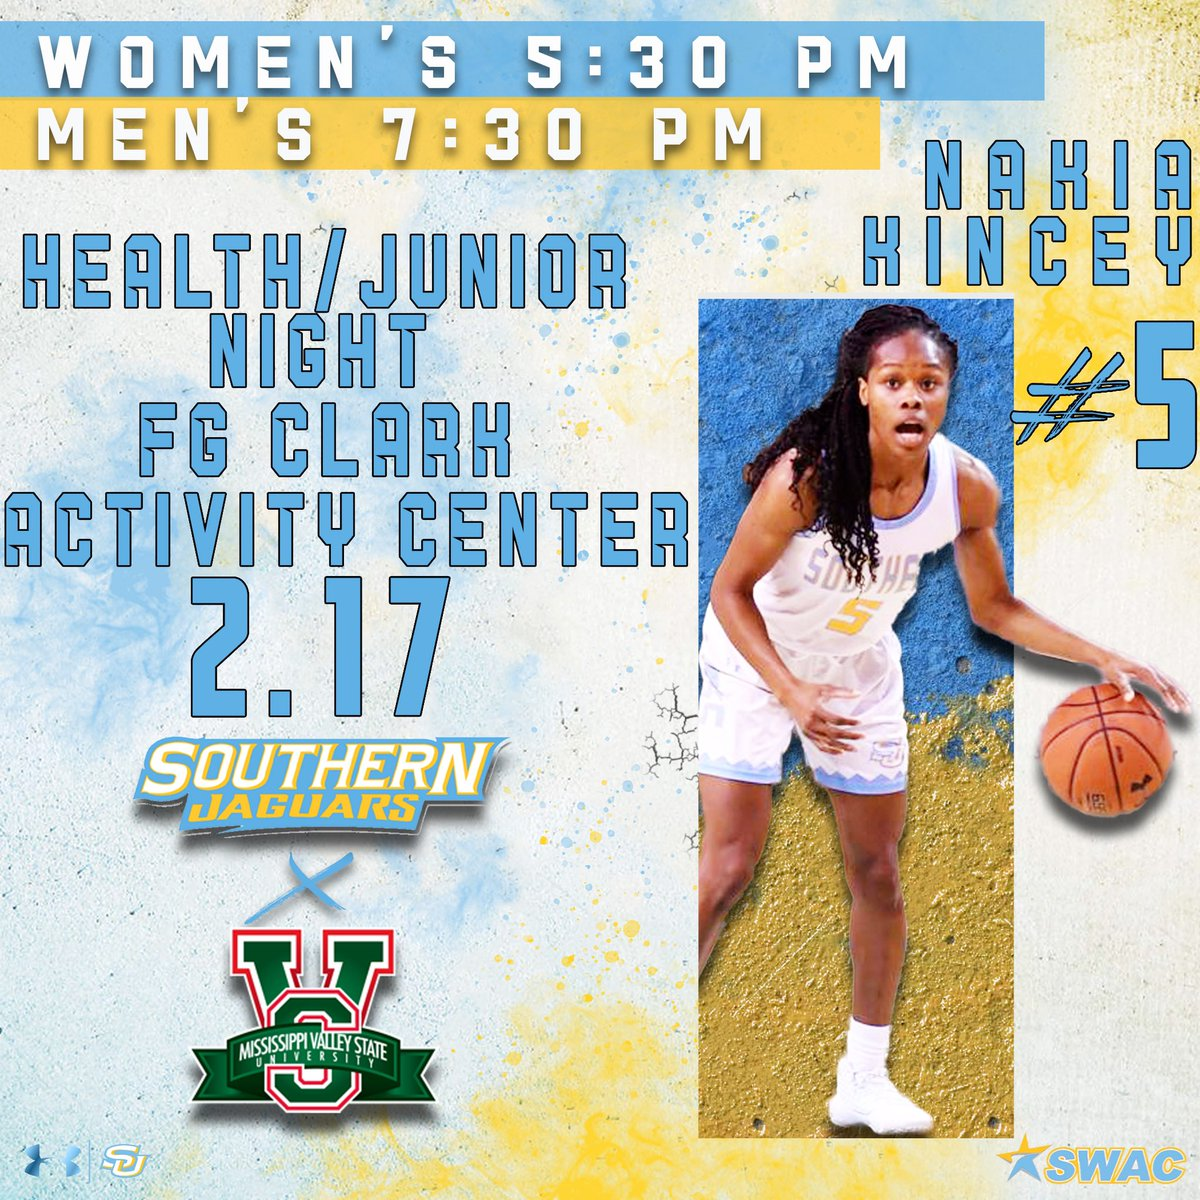 Jaguar Fans,  Join us TONIGHT for Health/Junior Night as the Jaguars face Mississippi Valley at 5:30pm and 7:30pm. Group tickets can be purchased at the ticket office or via phone at 2257713171. #GoJags pic.twitter.com/QumfktBRmu